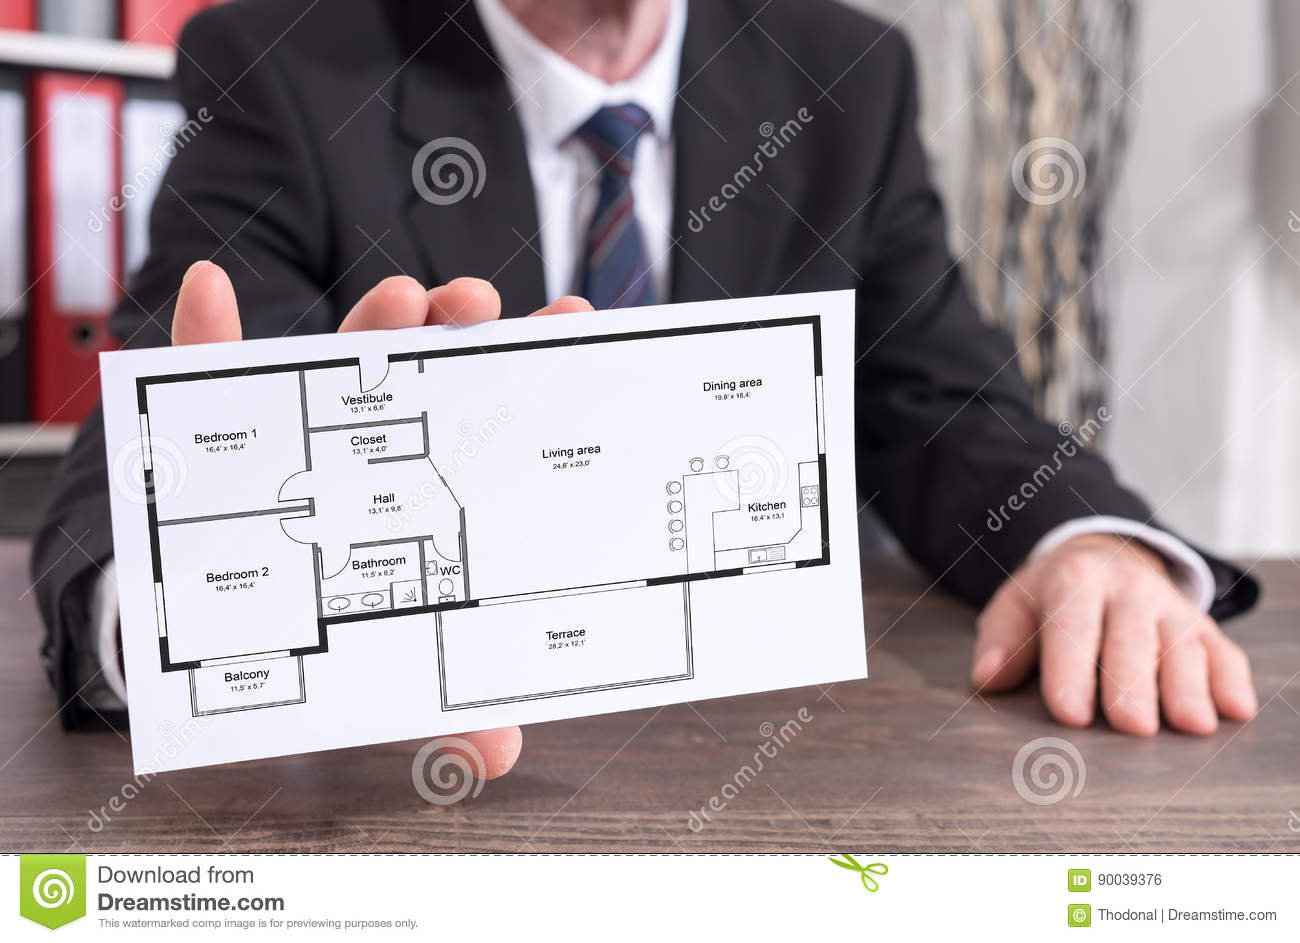 Apartment Plan Concept On An Index Card Stock Photo - Image